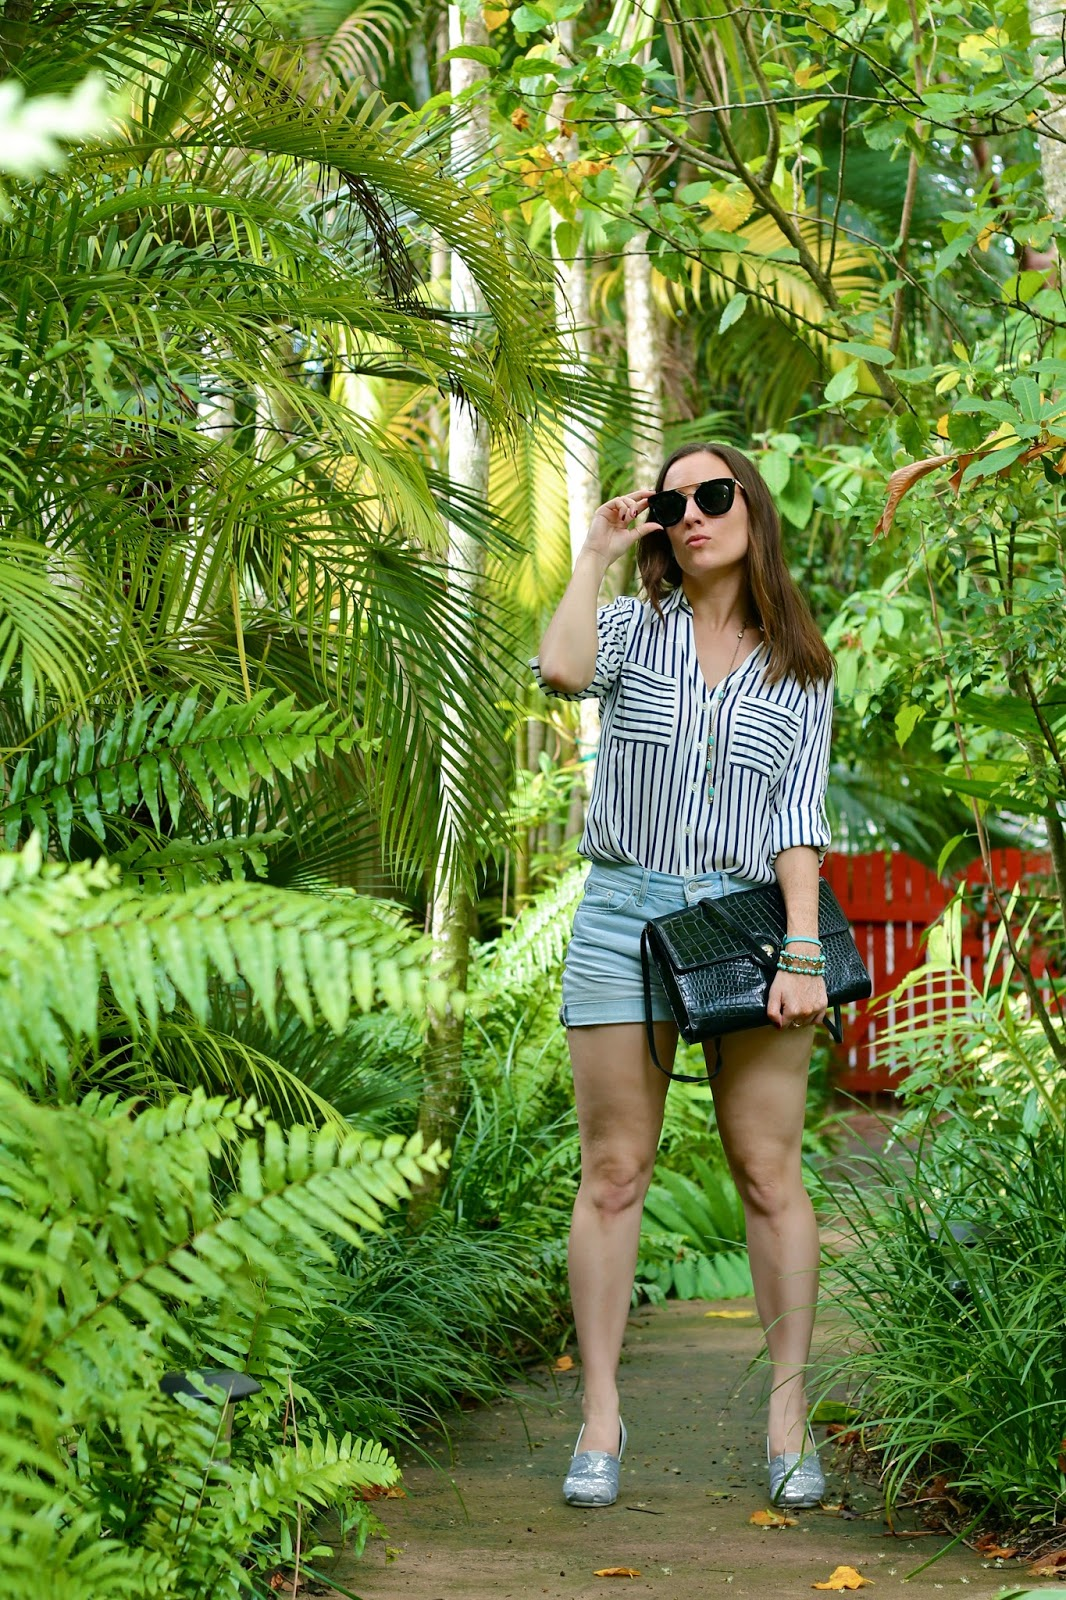 express, gap, TOMS, vintage, Macy's, BCBGeneration, Kate Spade, Nasty Gal, style blogger, fashion blogger, outfit ideas, look book, what to wear, fblogger